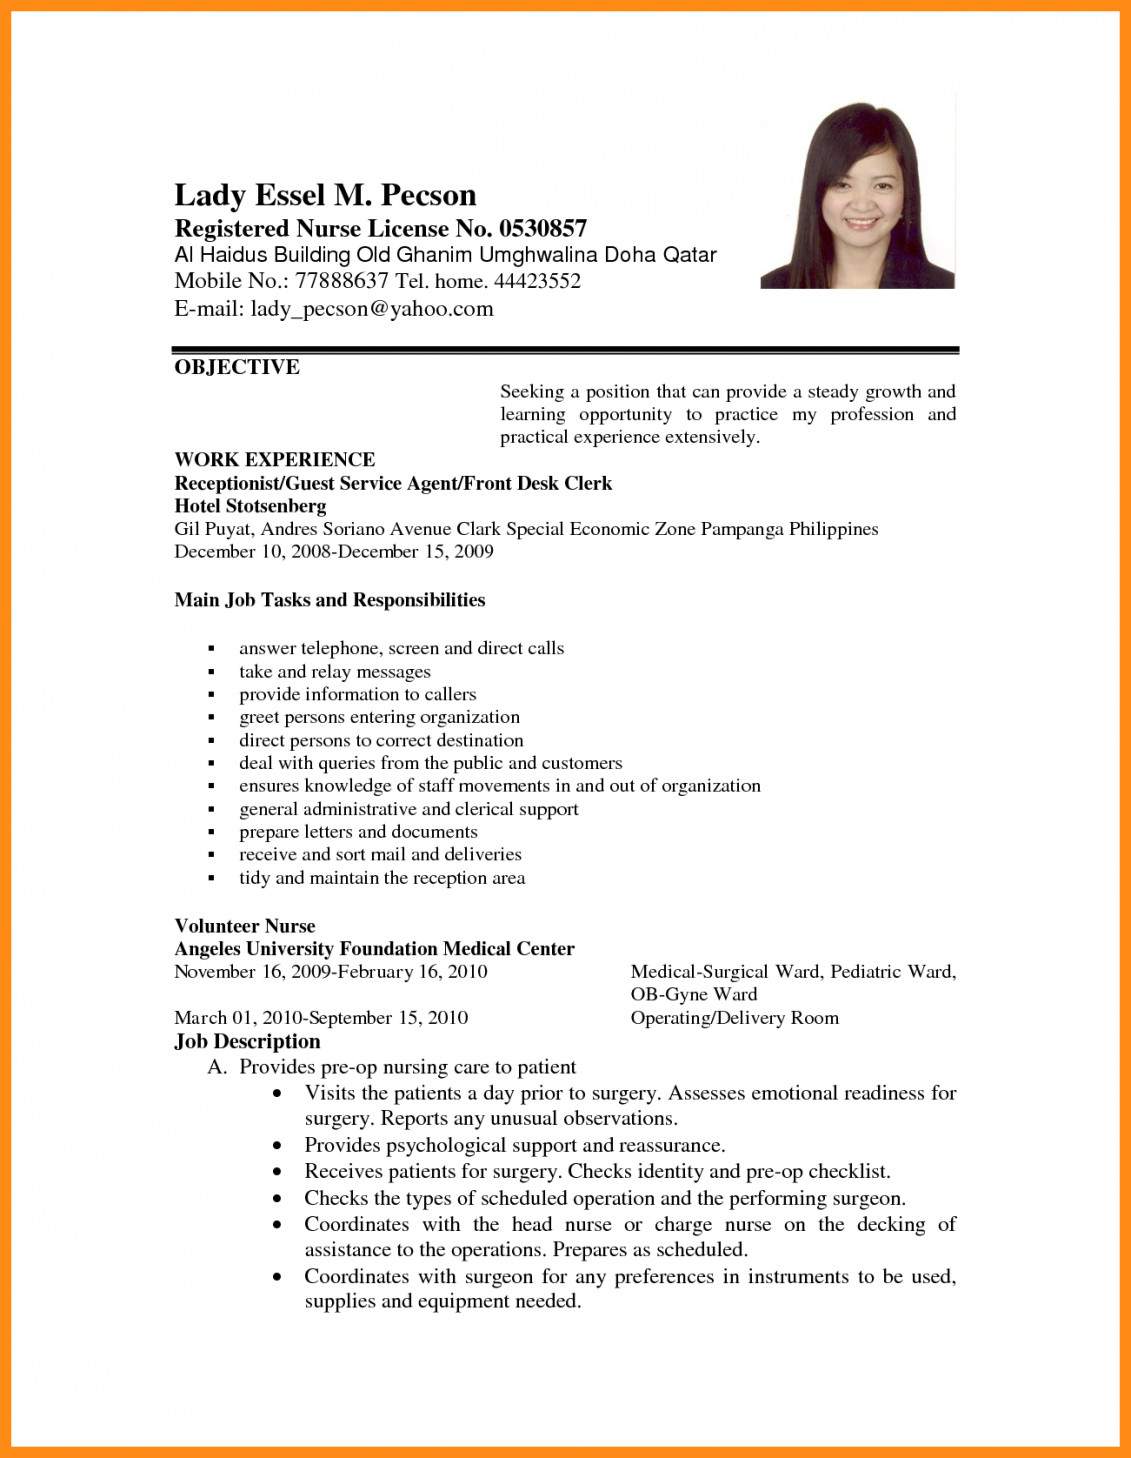 sample resume for application job template builder example seeker of format dockery Resume Job Application Job Seeker Resume Sample